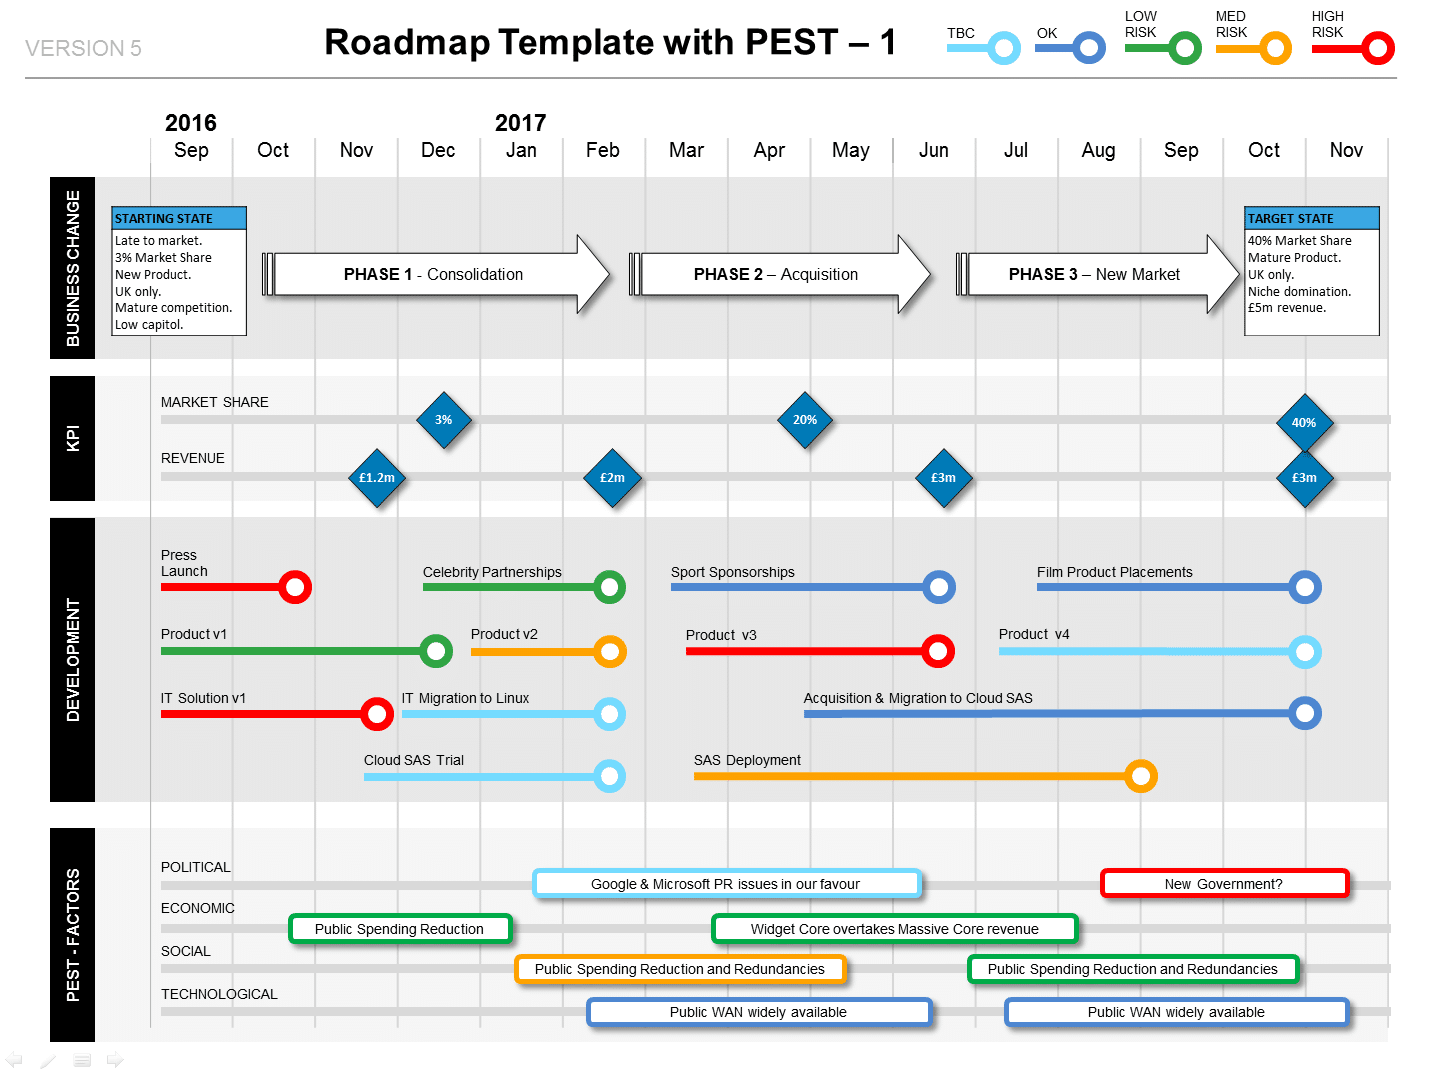 maximo communication template - roadmap with pest factors phases kpis milestones ppt